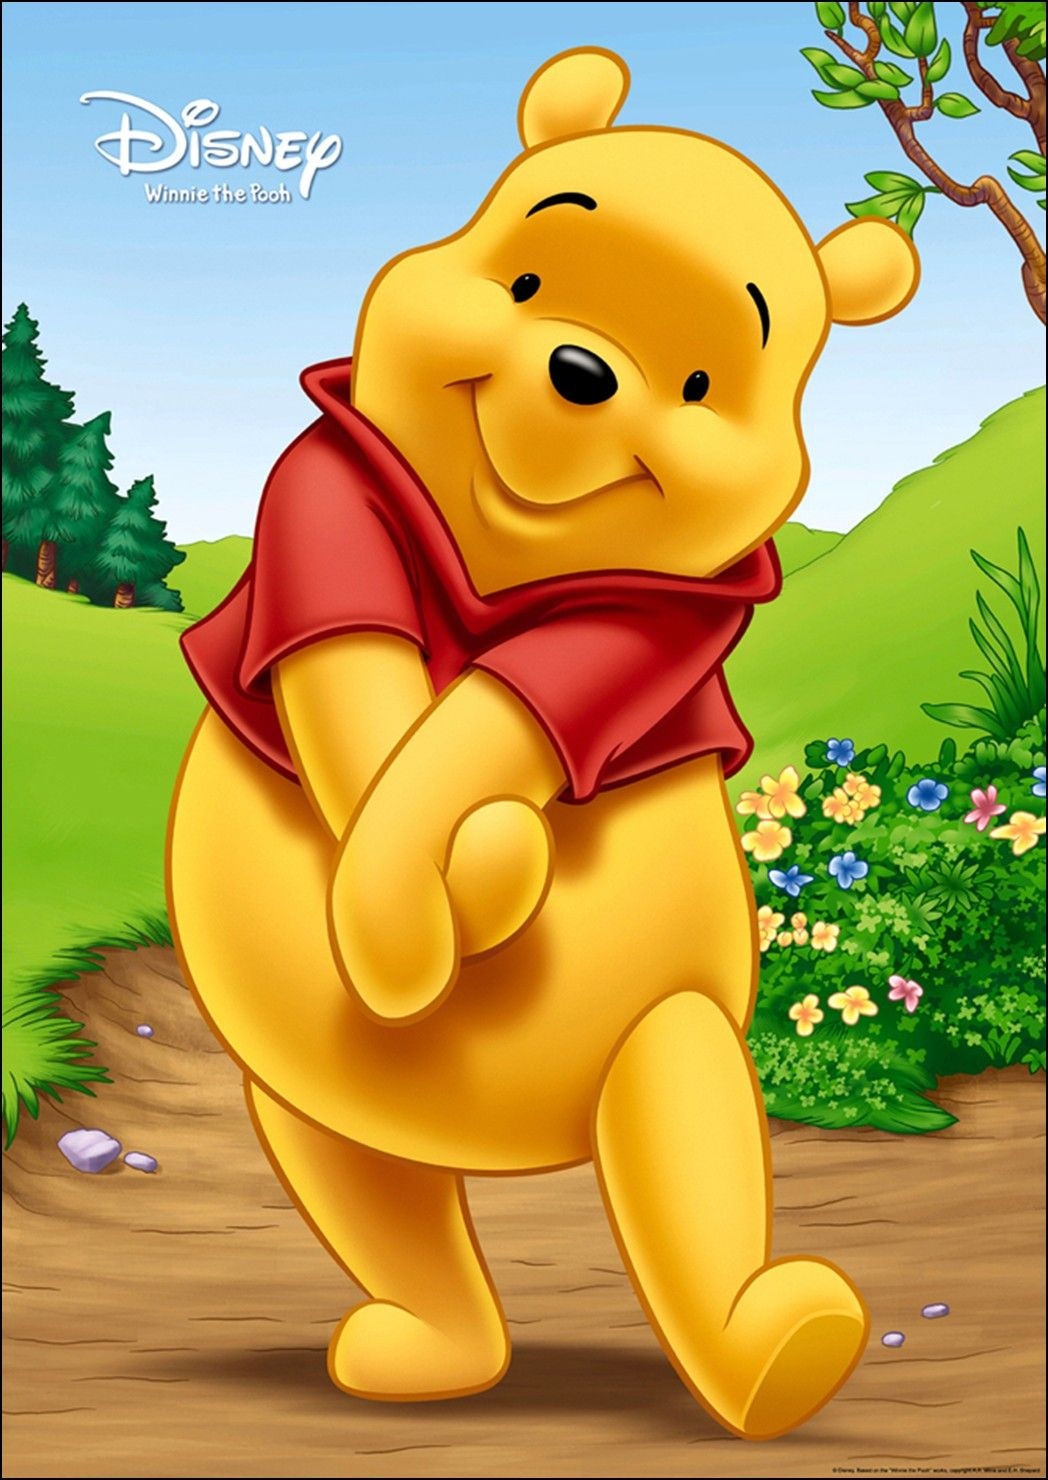 Wallpapers Of Winnie The Pooh Gallery 88 Plus Pic Wpw308639